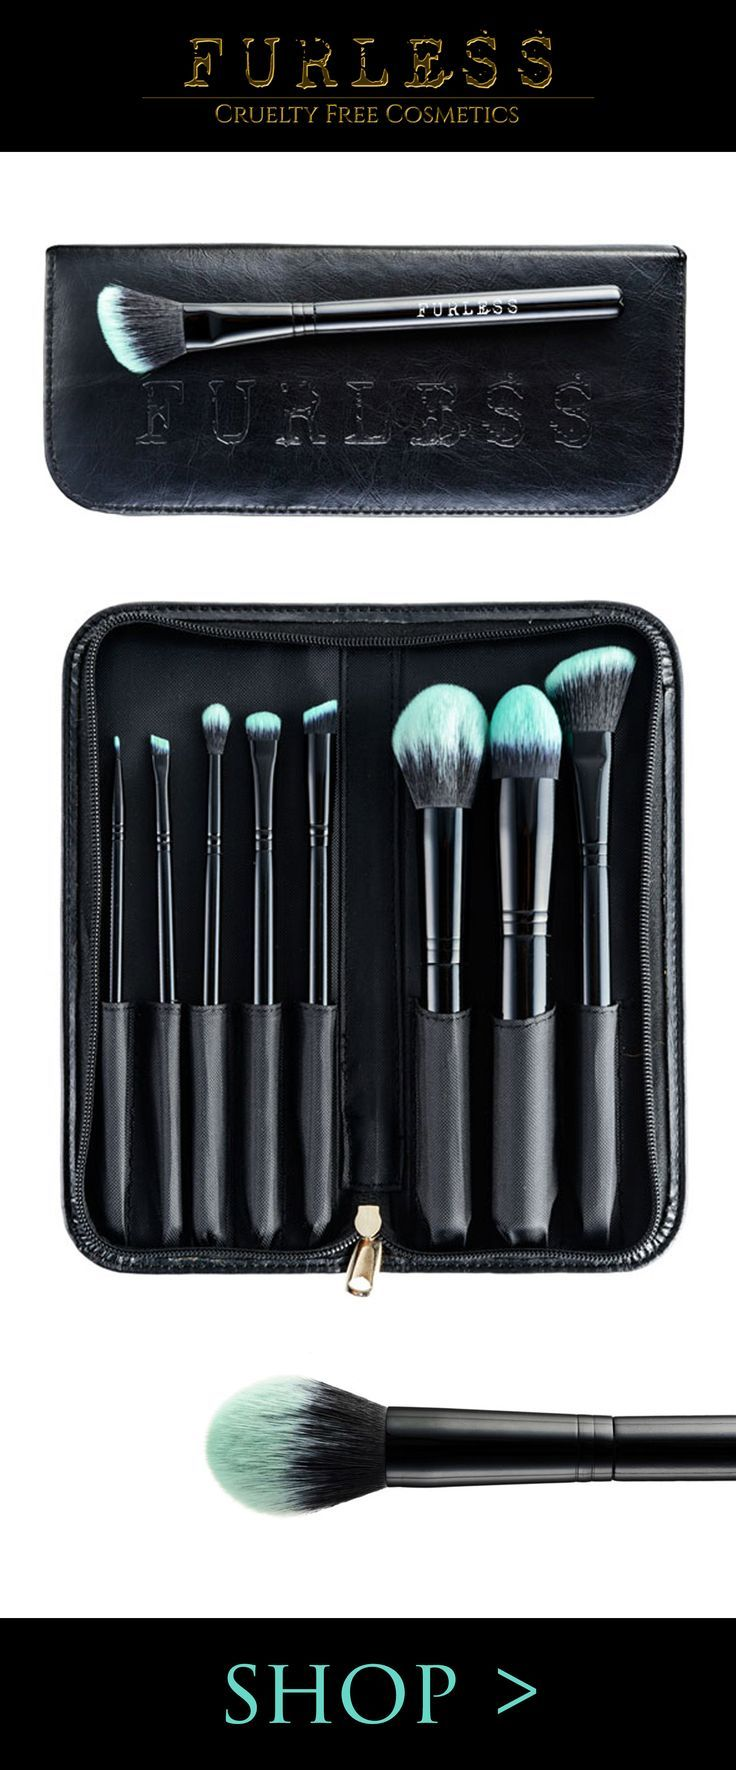 This pro black travel brush set is the standout kit for travelling. Shop: http://furlesscosmetics.com/black-beauty-makeup-brush-set